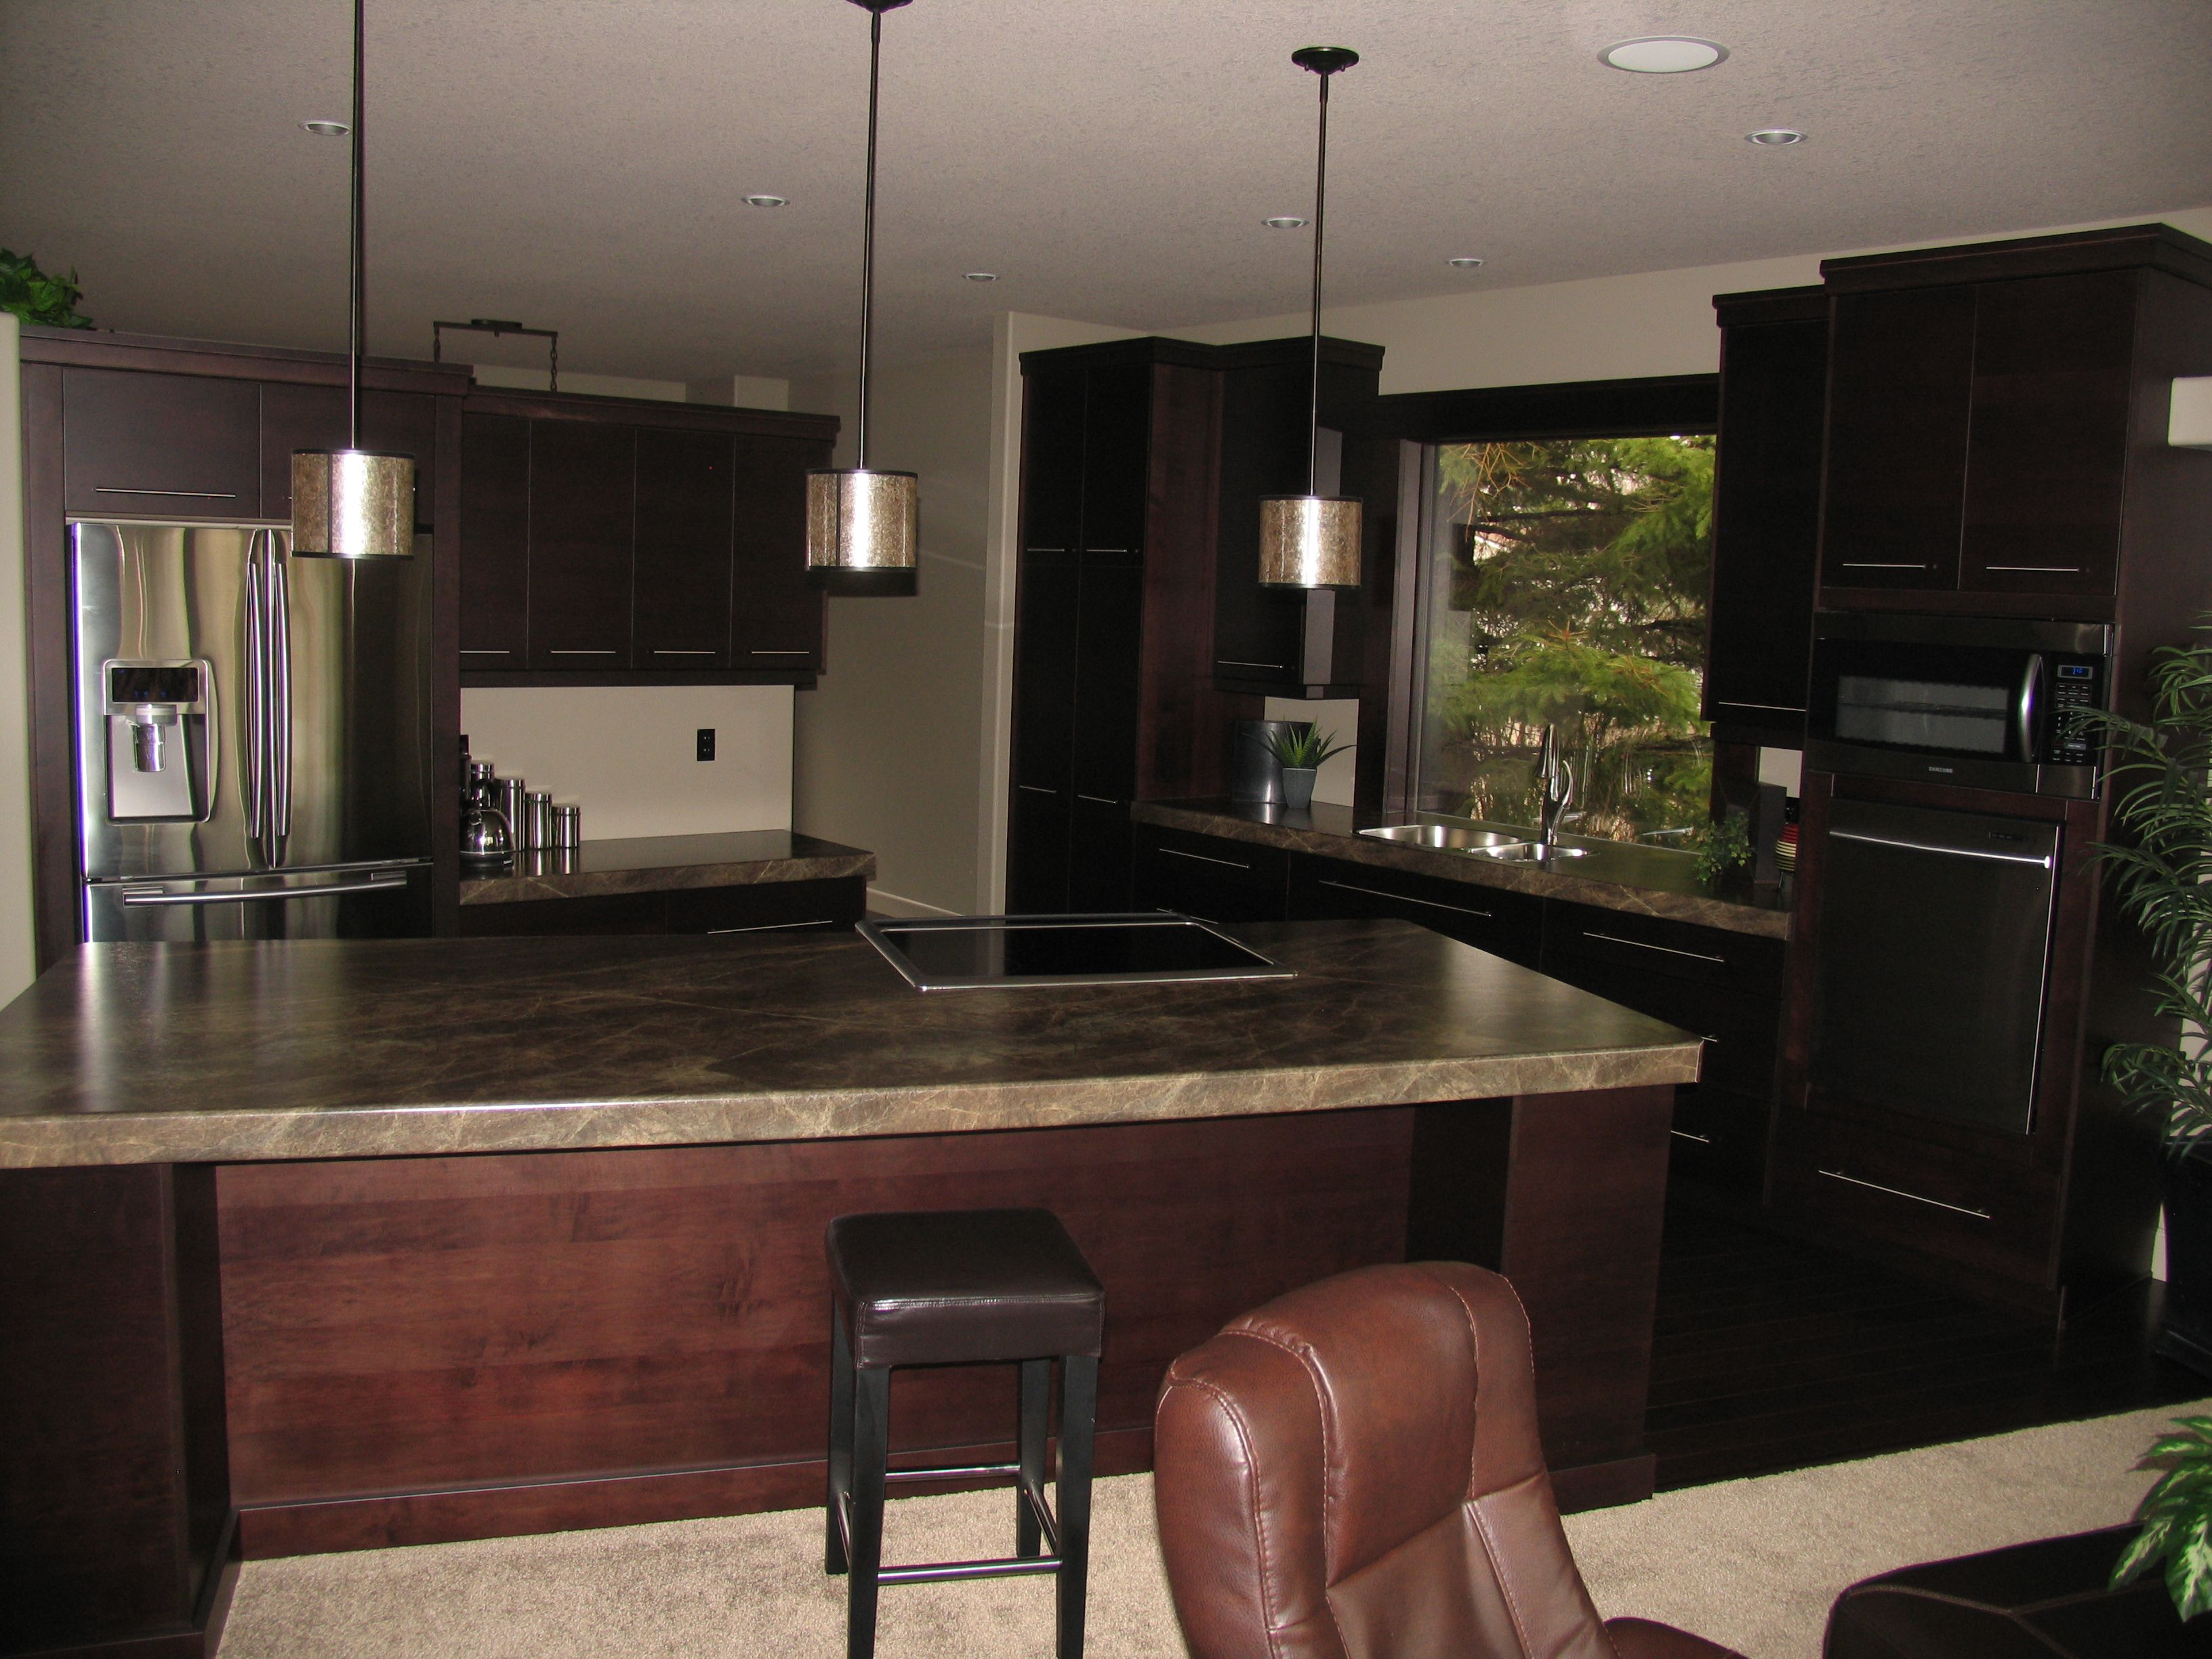 property cost mesmerizing bedroom ideas countertops painting awesome set room attachment exterior laminate and picture family other or